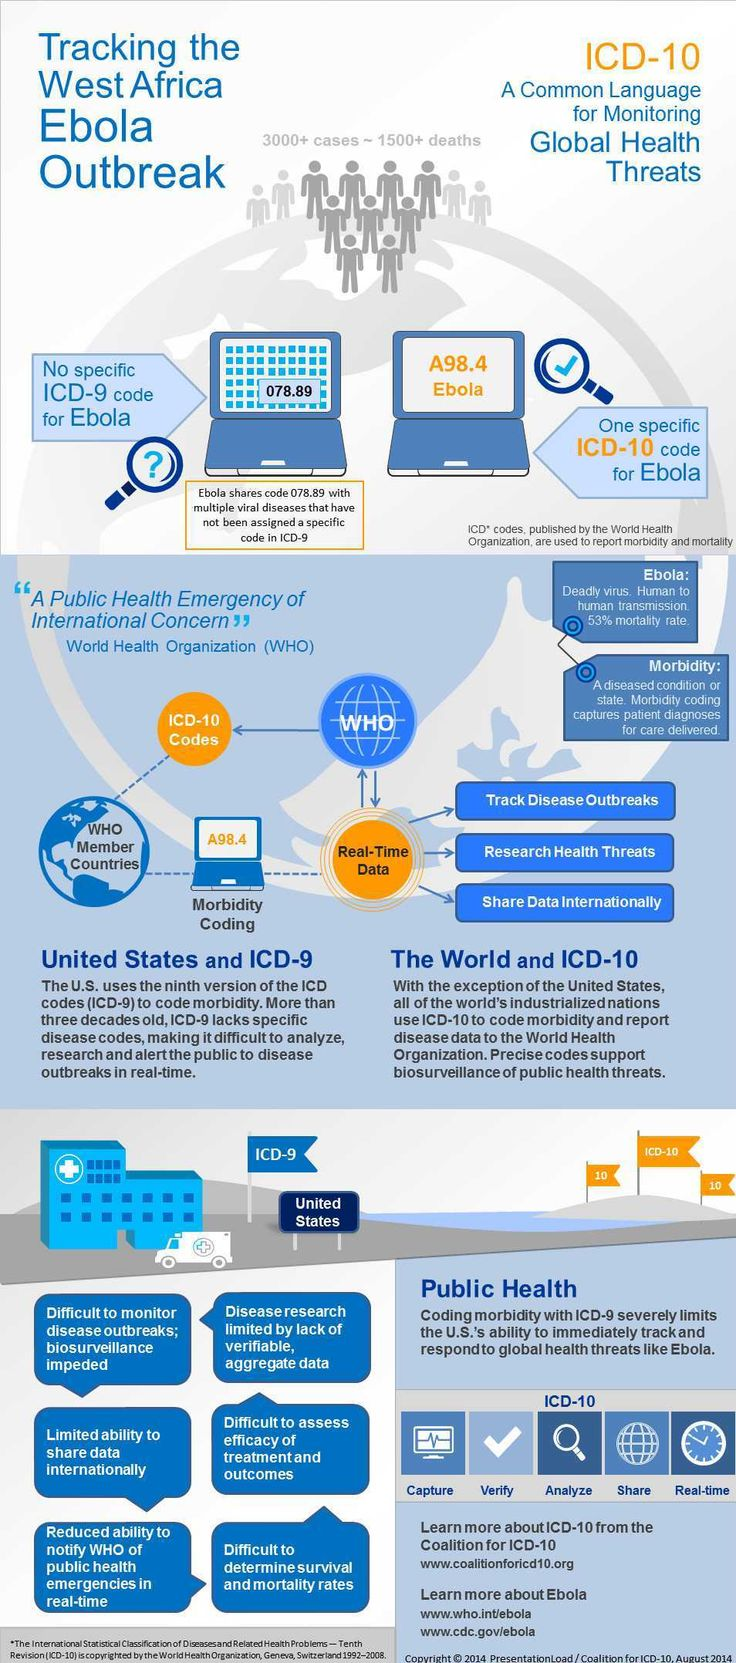 88 best icd 10 images on pinterest icd 10 medical coder and 10 could help track ebola outbreak hit consultant xflitez Image collections